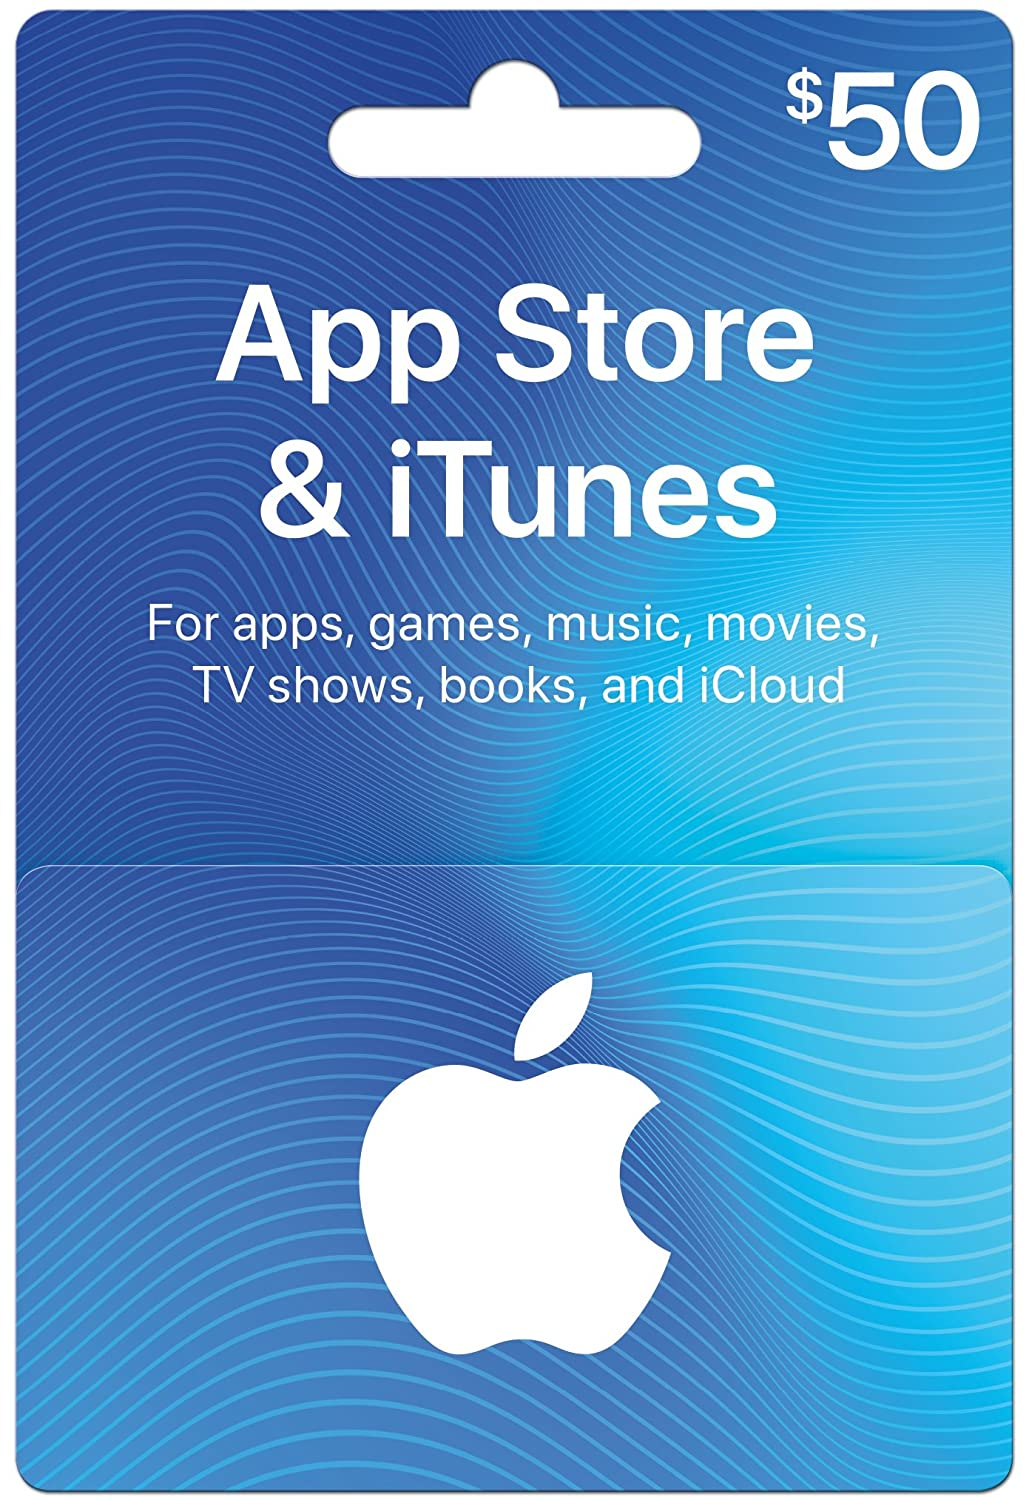 App Store & iTunes 50 USD GIFT CARD US